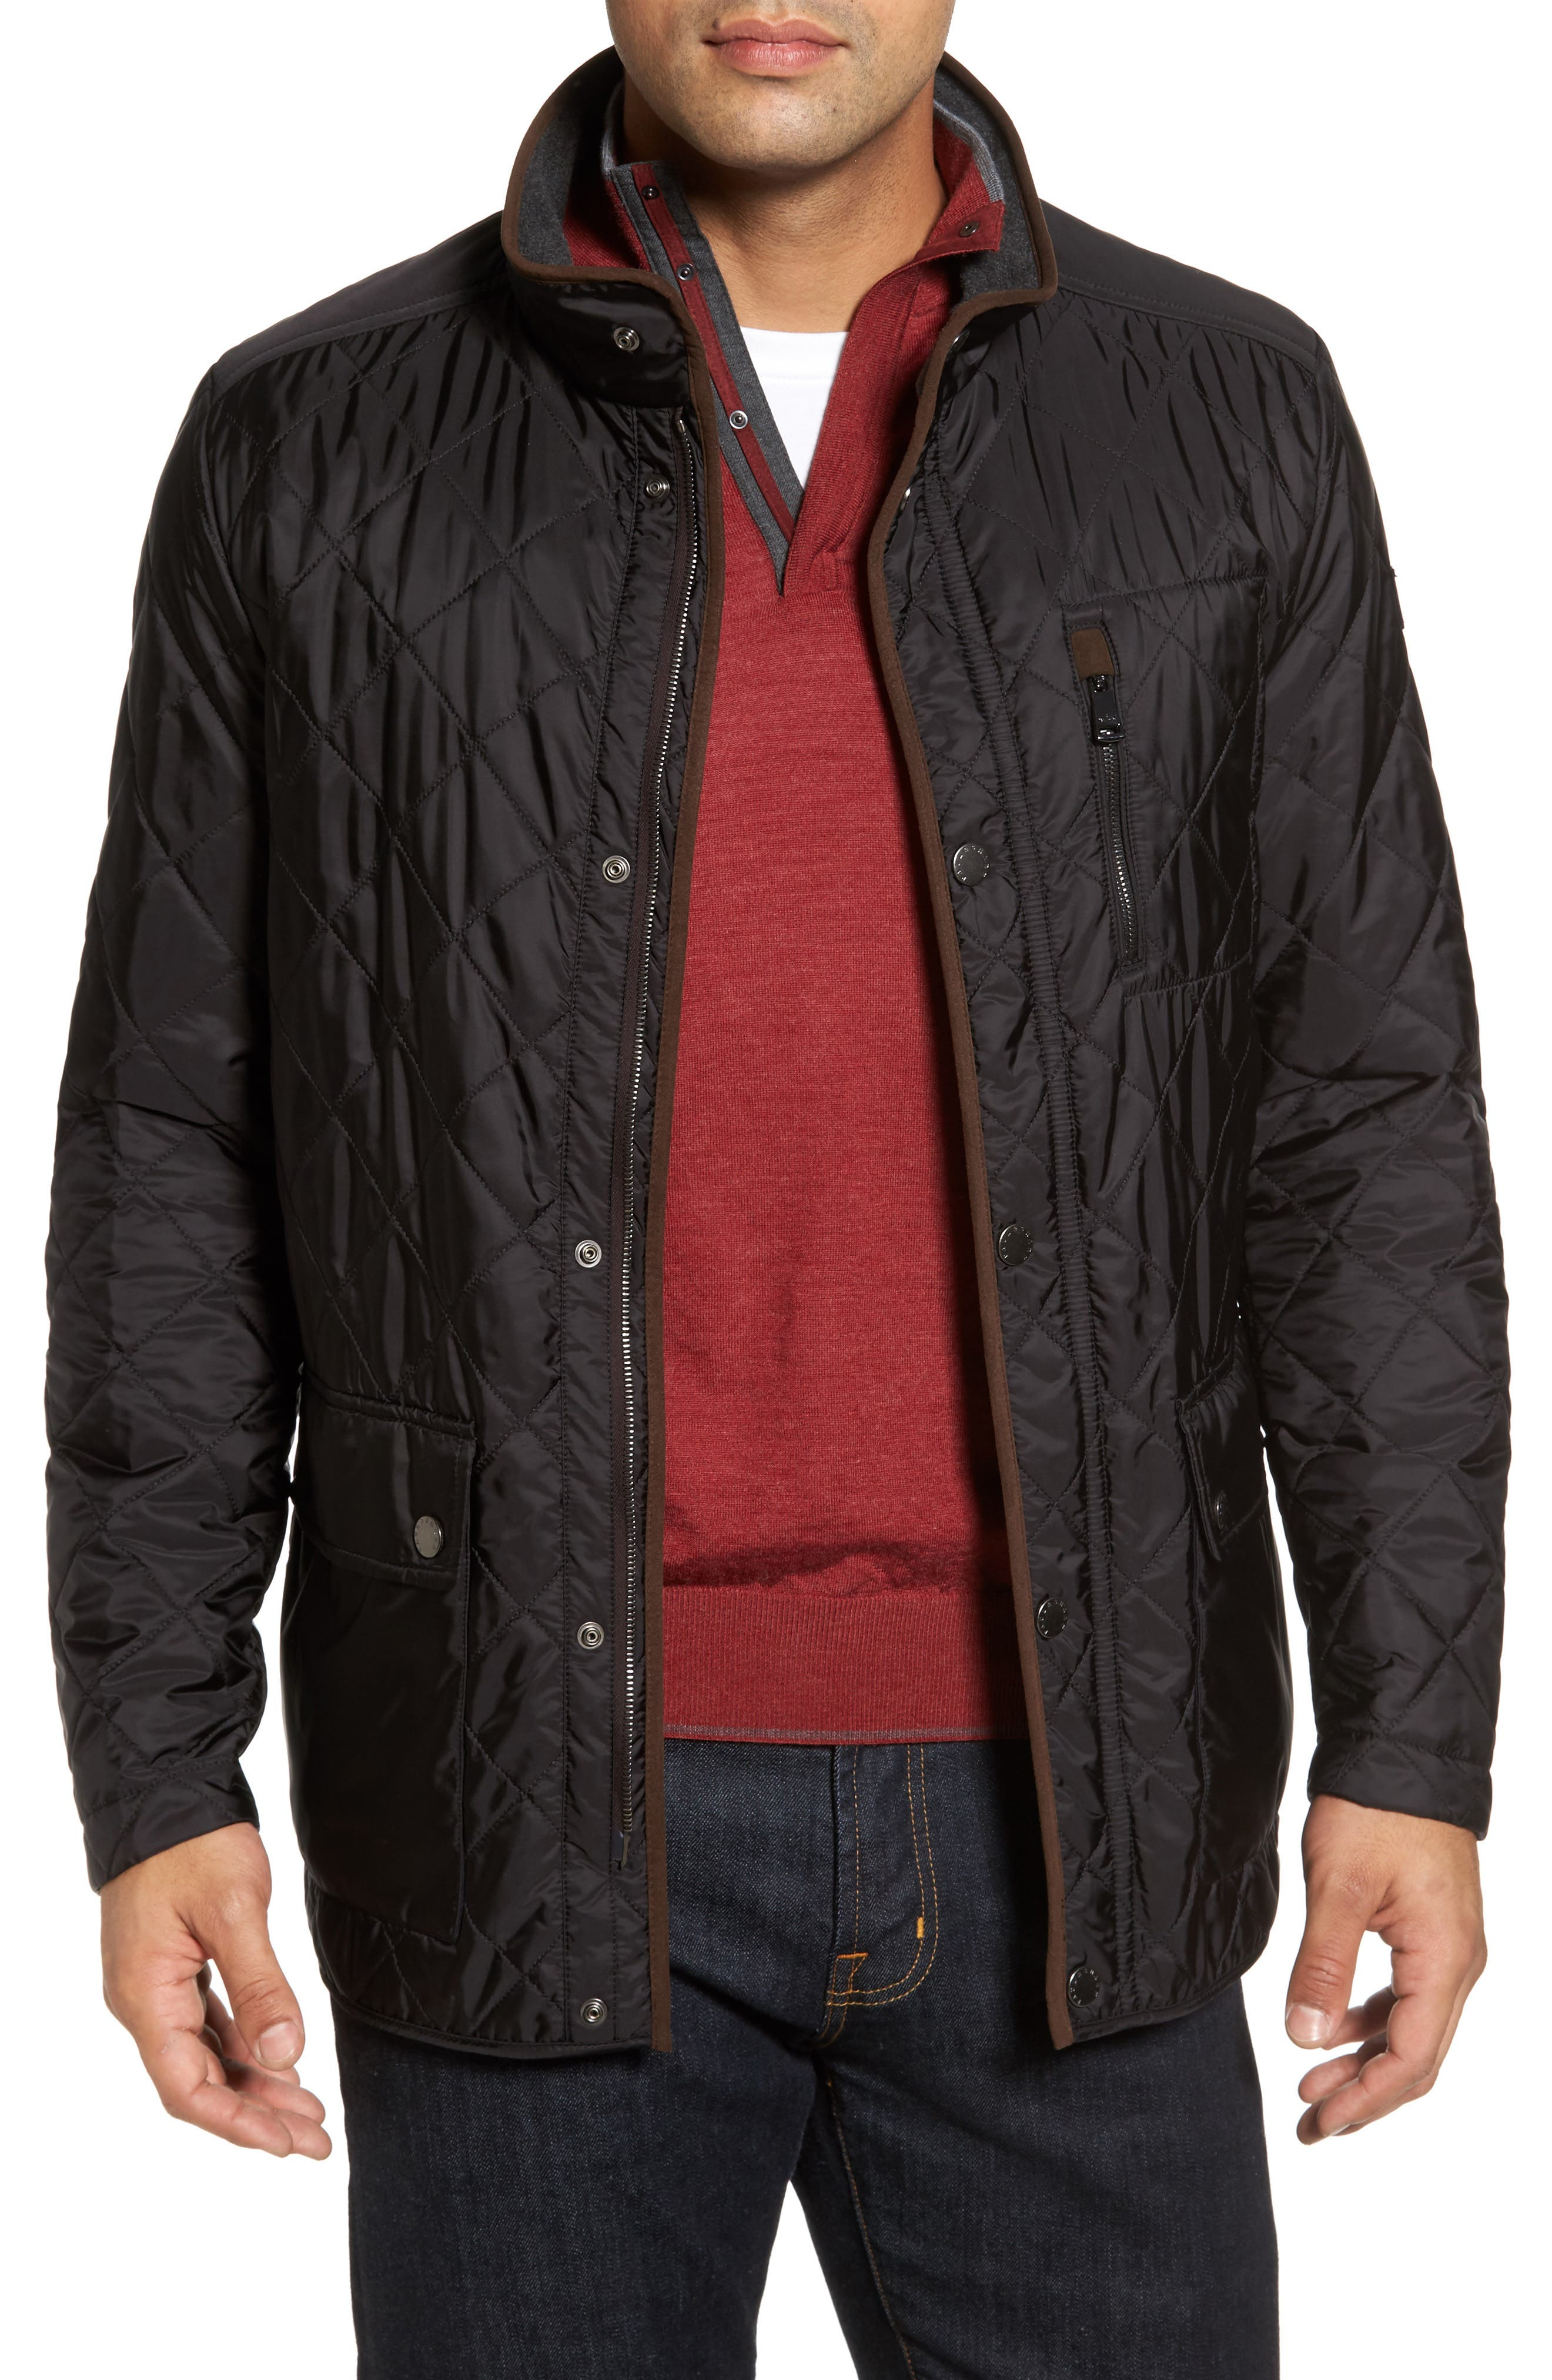 Paul&Shark Fleece Lined Quilted Jacket,                             Main thumbnail 1, color,                             001